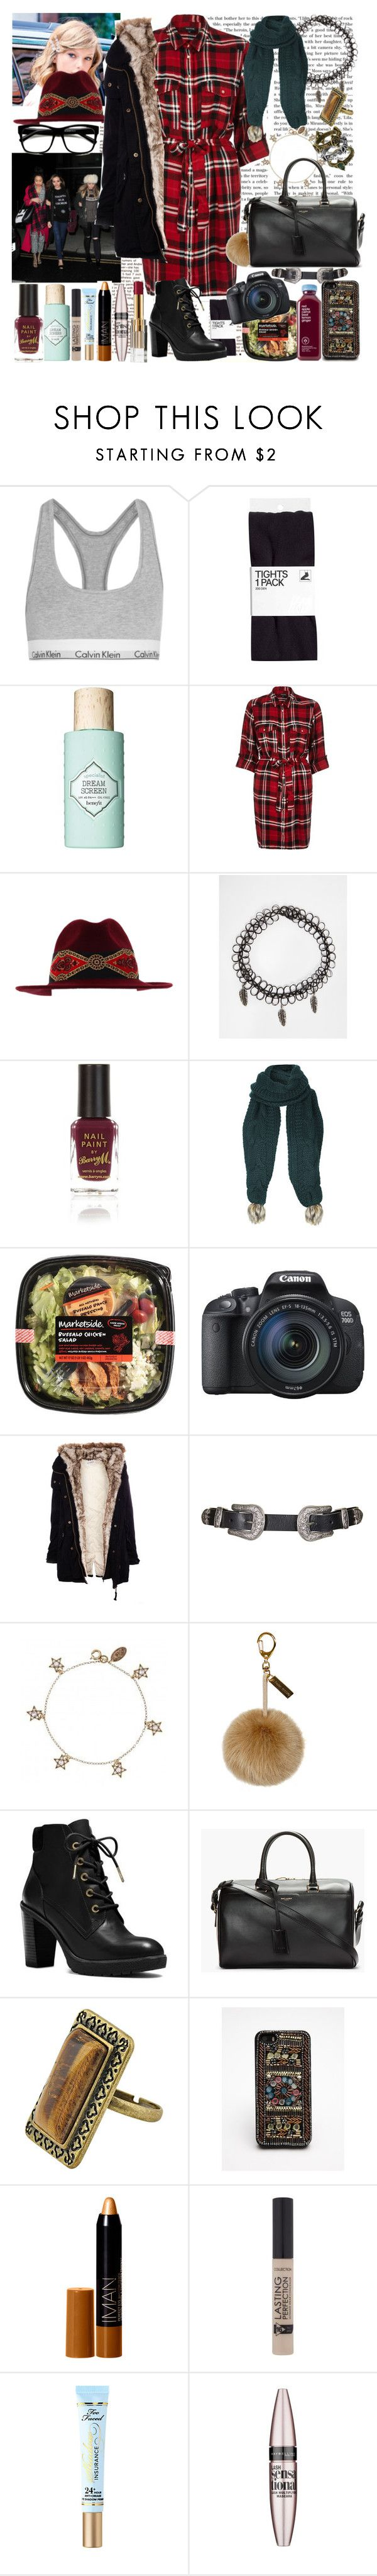 """""""DINNER NIGHT OUT WITH JERRIE AND LEIGH."""" by costina-raftu ❤ liked on Polyvore featuring Calvin Klein Underwear, Benefit, River Island, ASOS, Topshop, Pull&Bear, Cath Kidston, Helen Moore, Michael Kors and Yves Saint Laurent"""